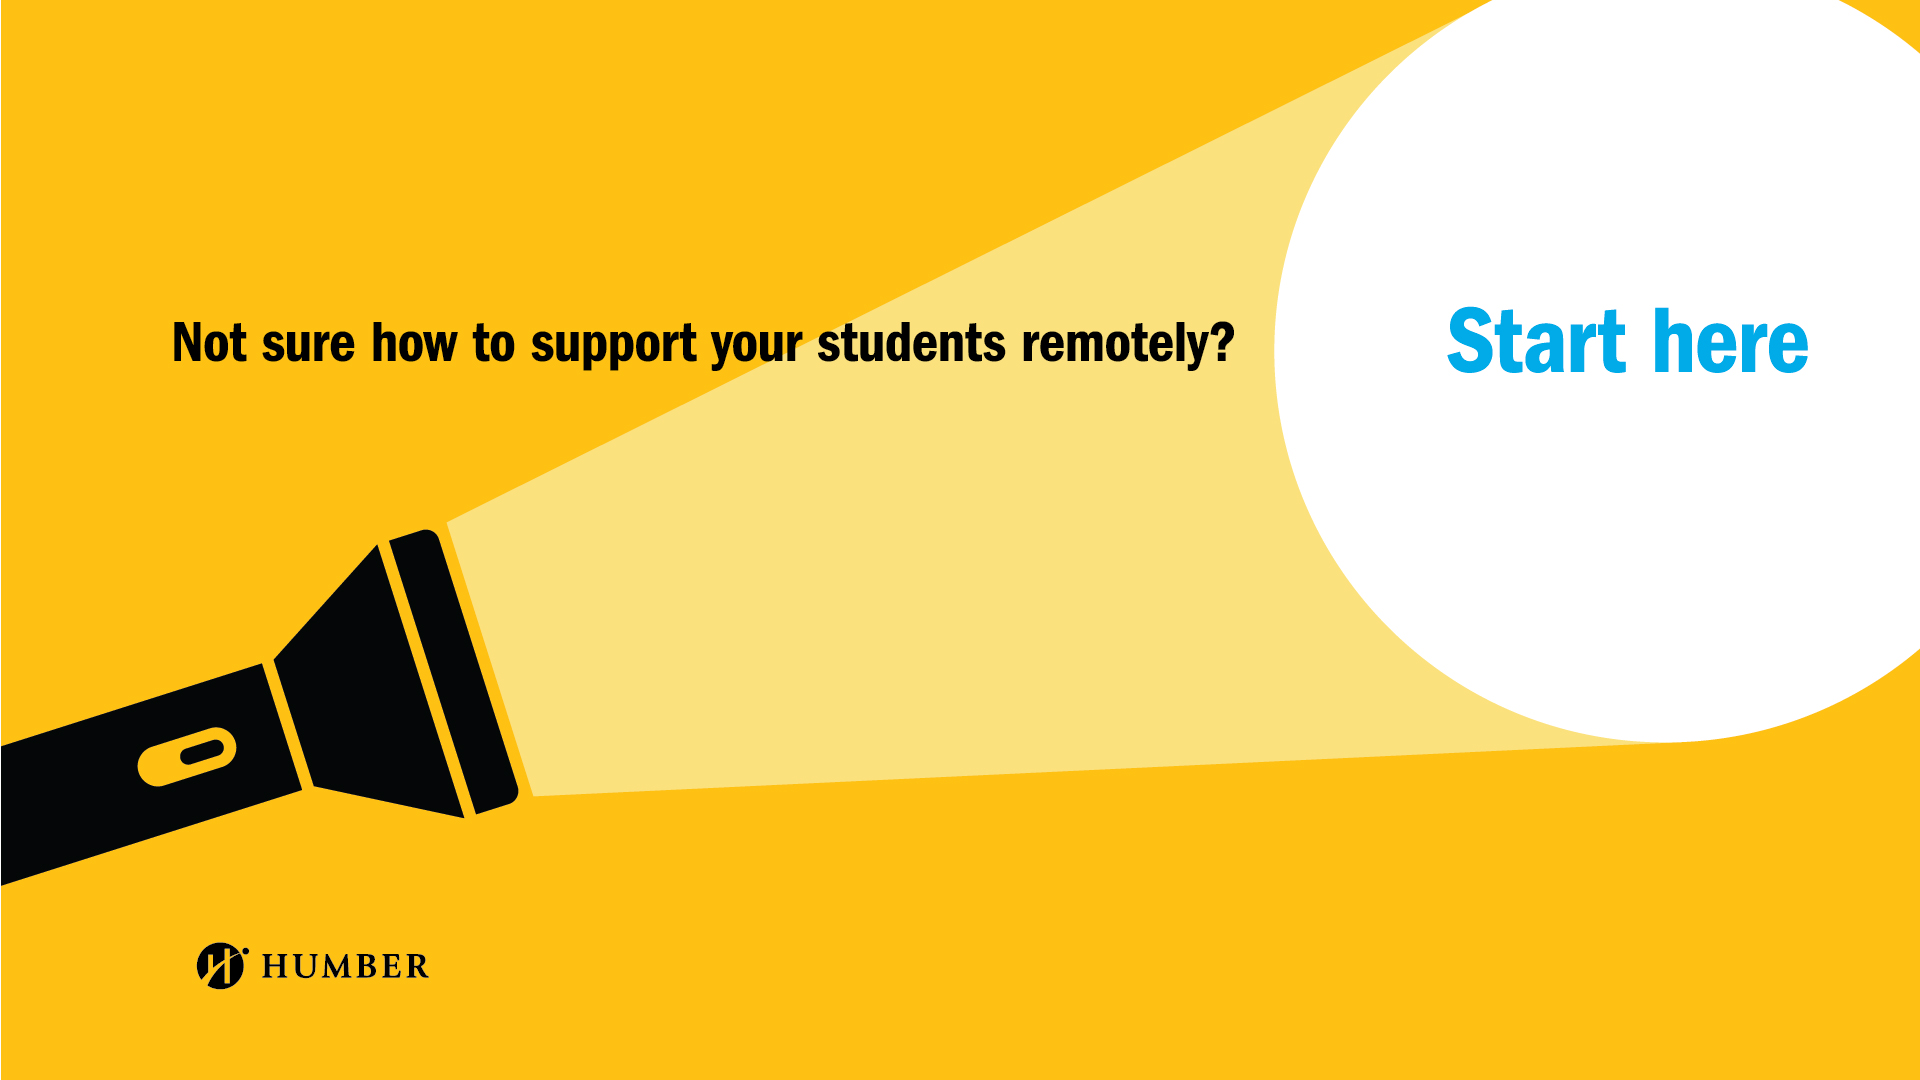 Not sure how to support your students remotely? Start here with the learning continuity kit